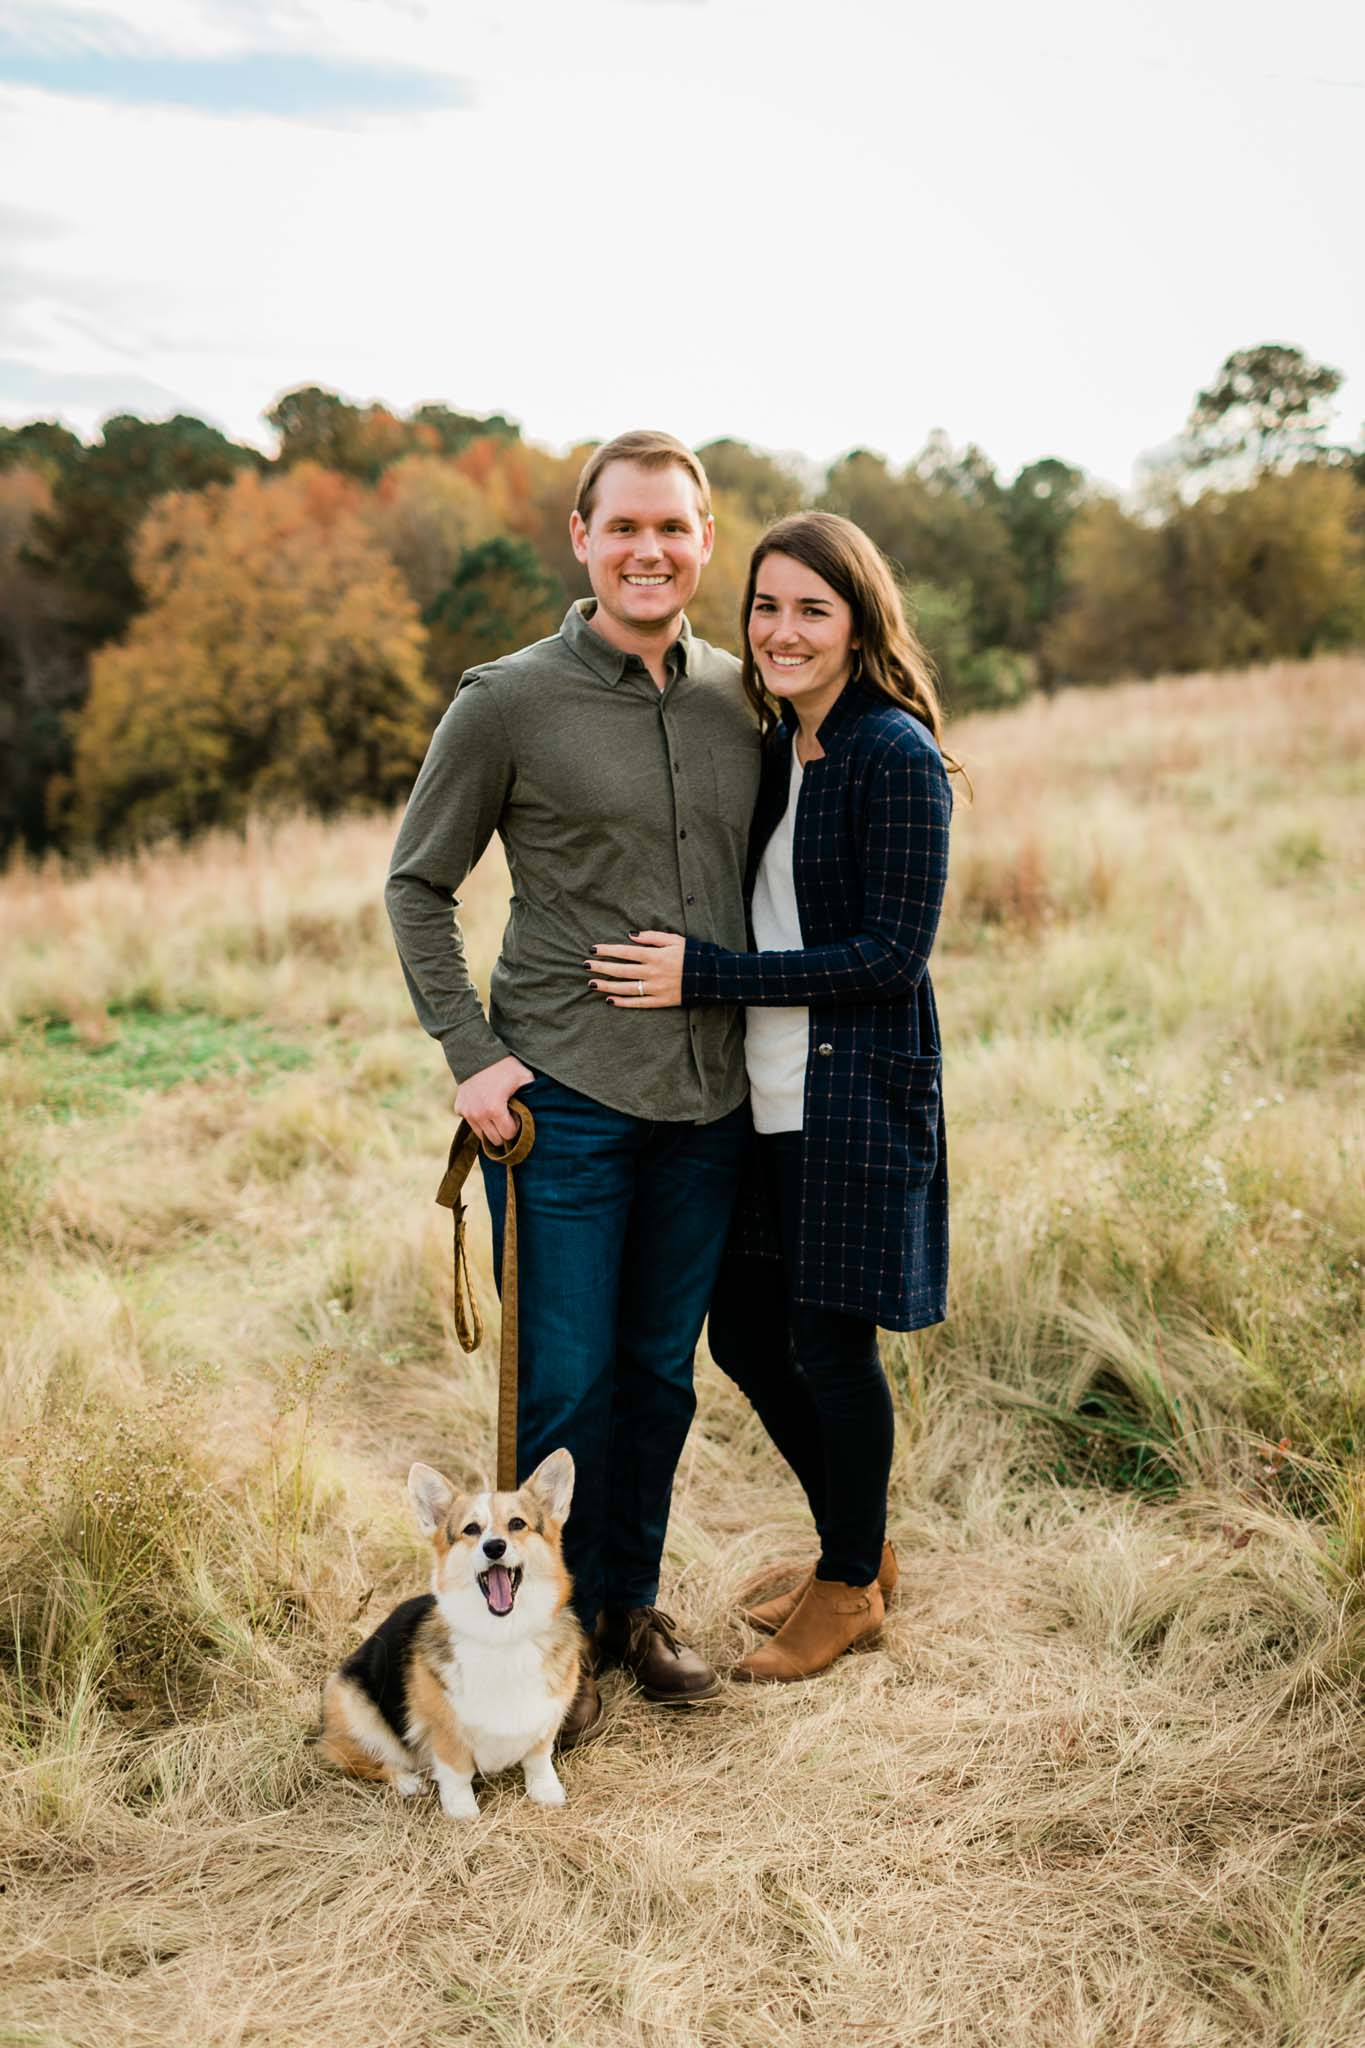 Outdoor family session with dog in open field   Raleigh Family Photographer   By G. Lin Photography